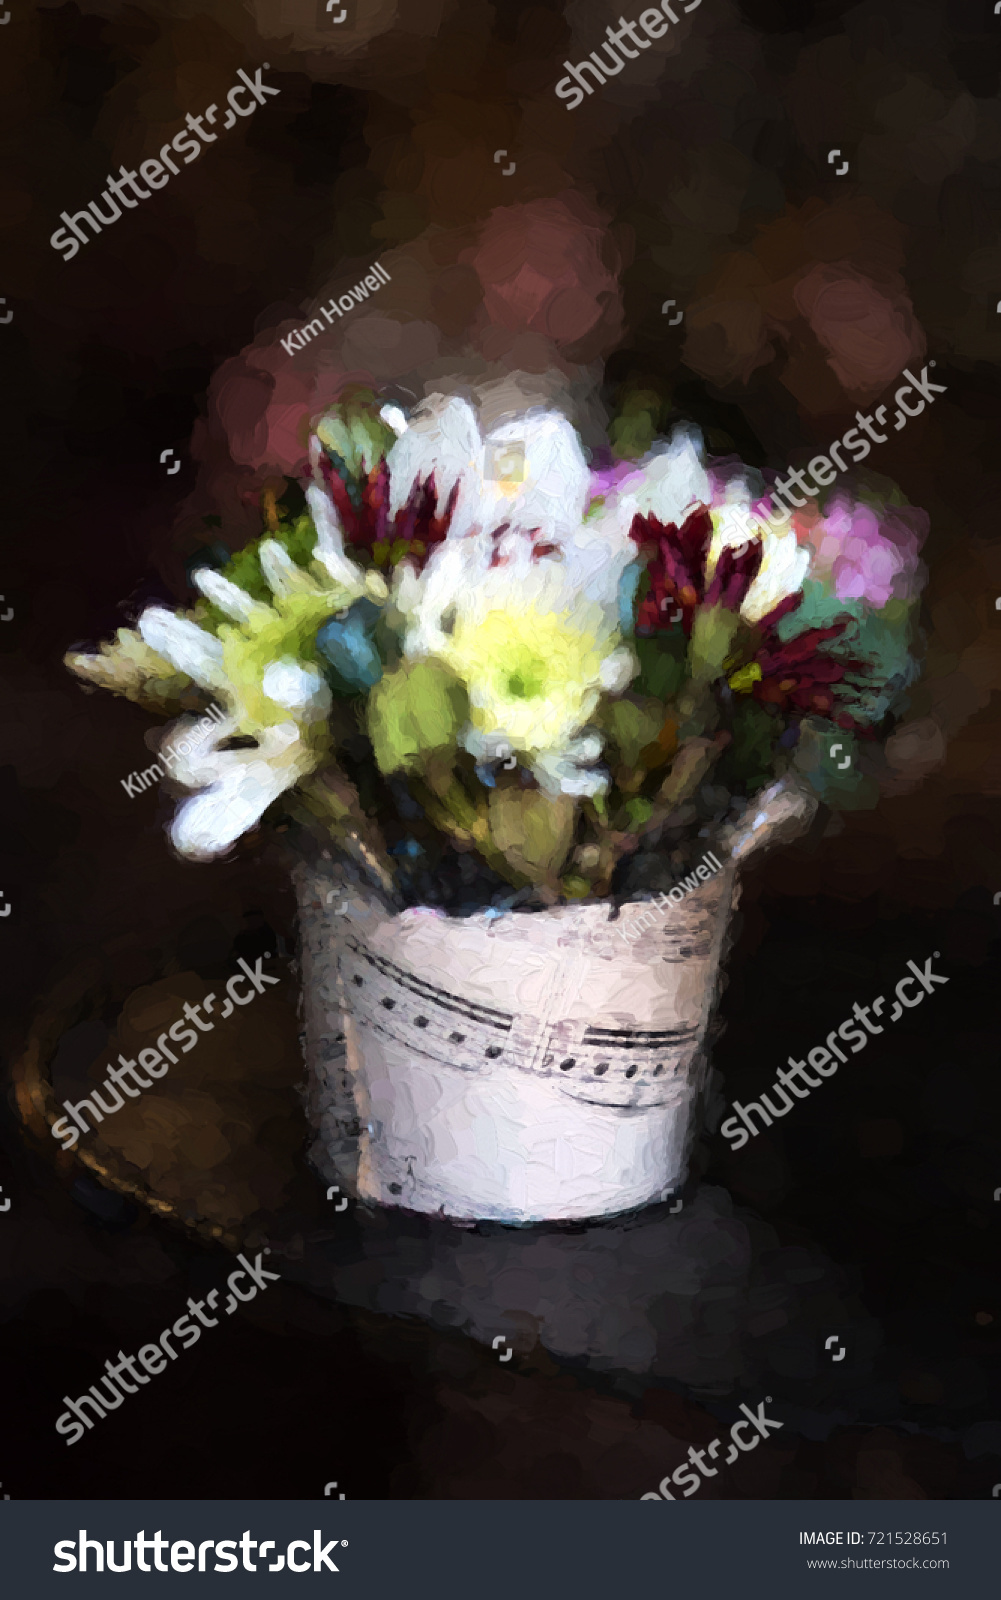 Impressionist Painting Created Photo Bunch Flowers Stock